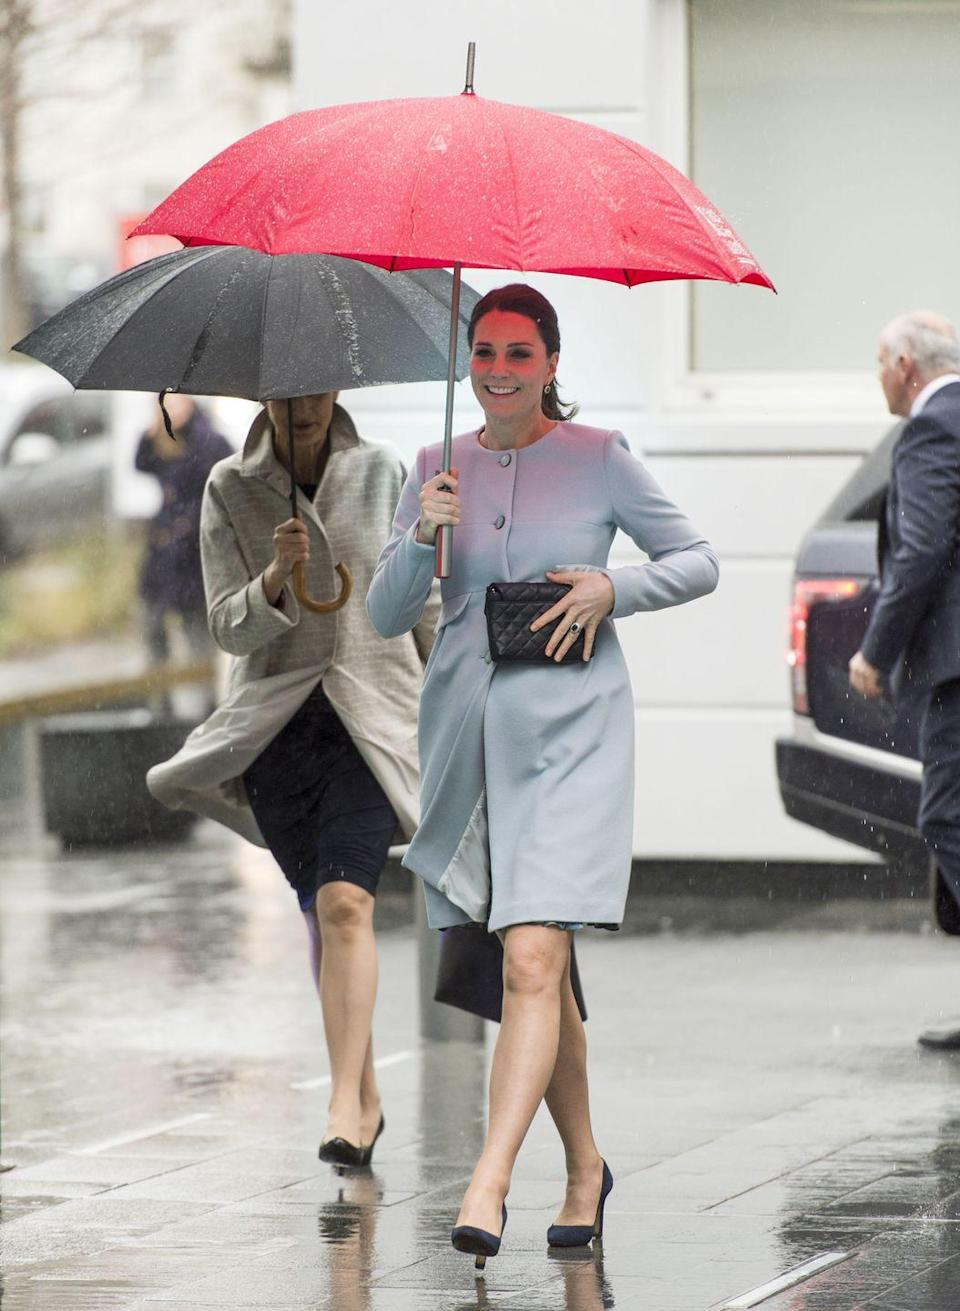 "<p>The Duchess stepped out on a rainy day in London in a pale blue cashmere blend coat <a href=""https://www.seraphine.com/en-us/natasha-cashmere-blend-coat.html?"" rel=""nofollow noopener"" target=""_blank"" data-ylk=""slk:by Seraphine, which is still on sale for $299."" class=""link rapid-noclick-resp"">by Seraphine, which is still on sale for $299.</a> She accessorized with a black clutch and black heels.</p>"